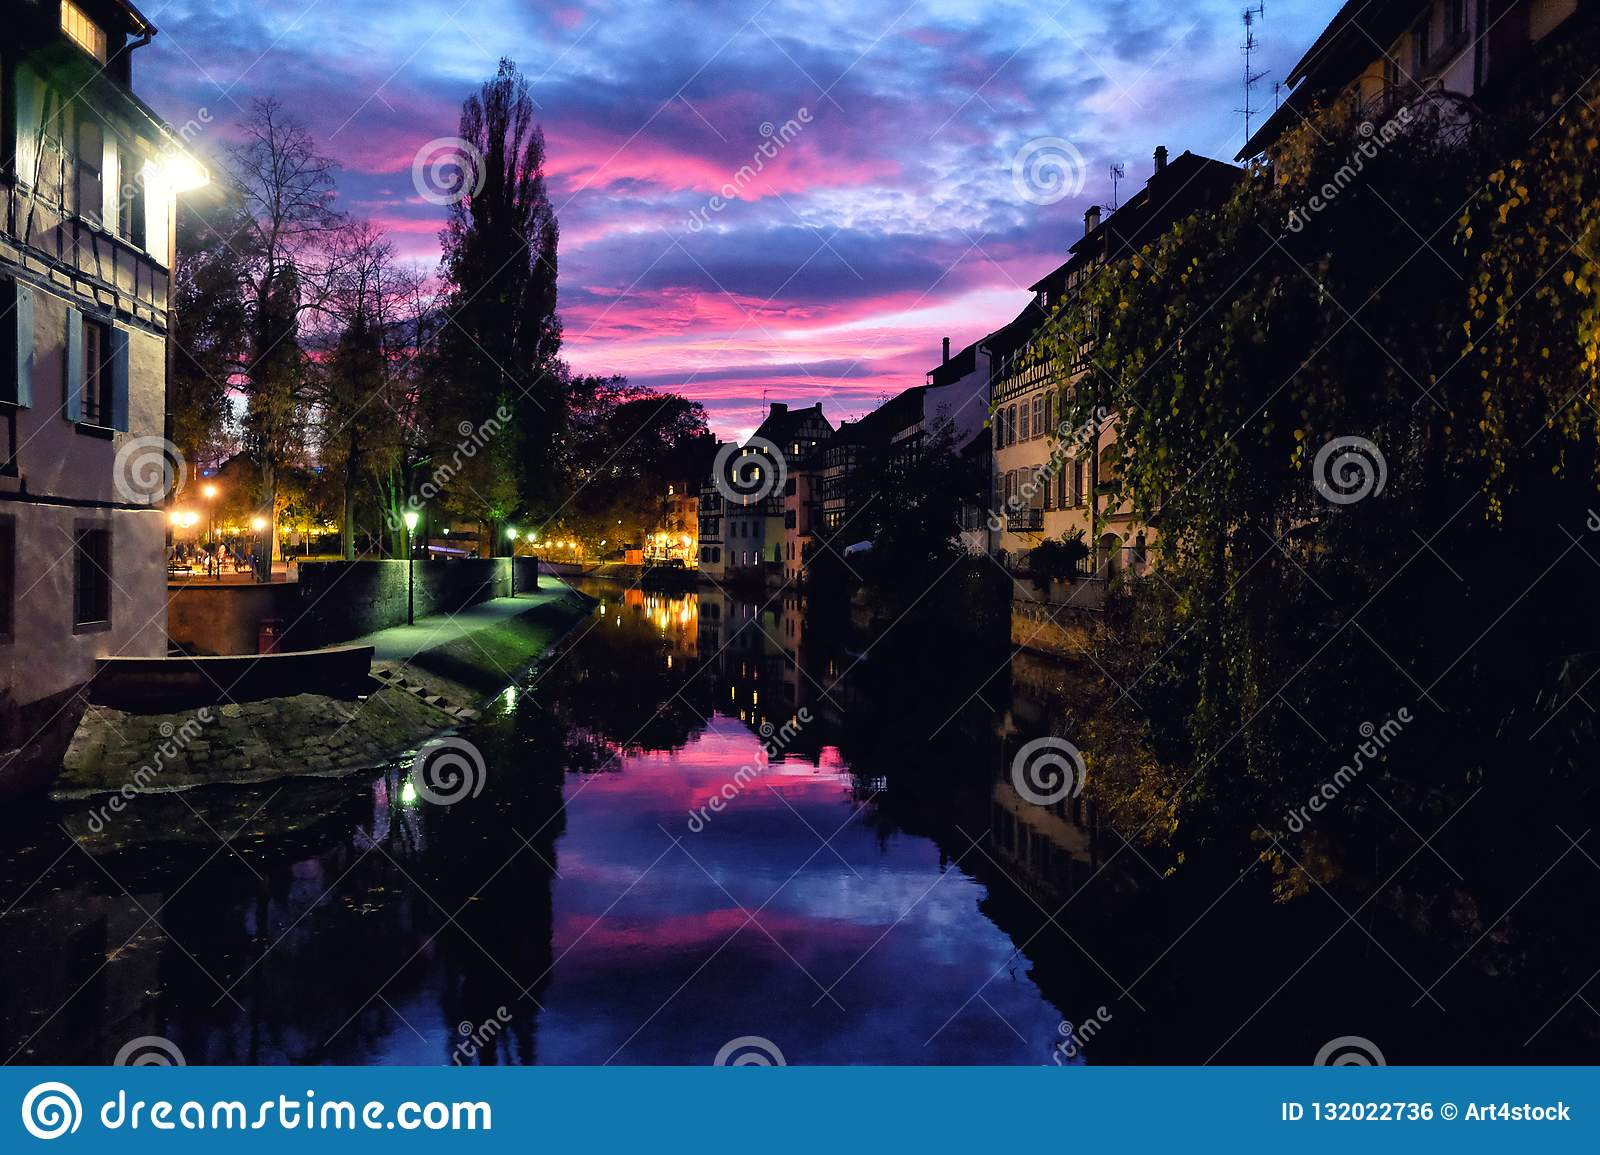 Sunset over Petite France district in Strasbourg, Germany